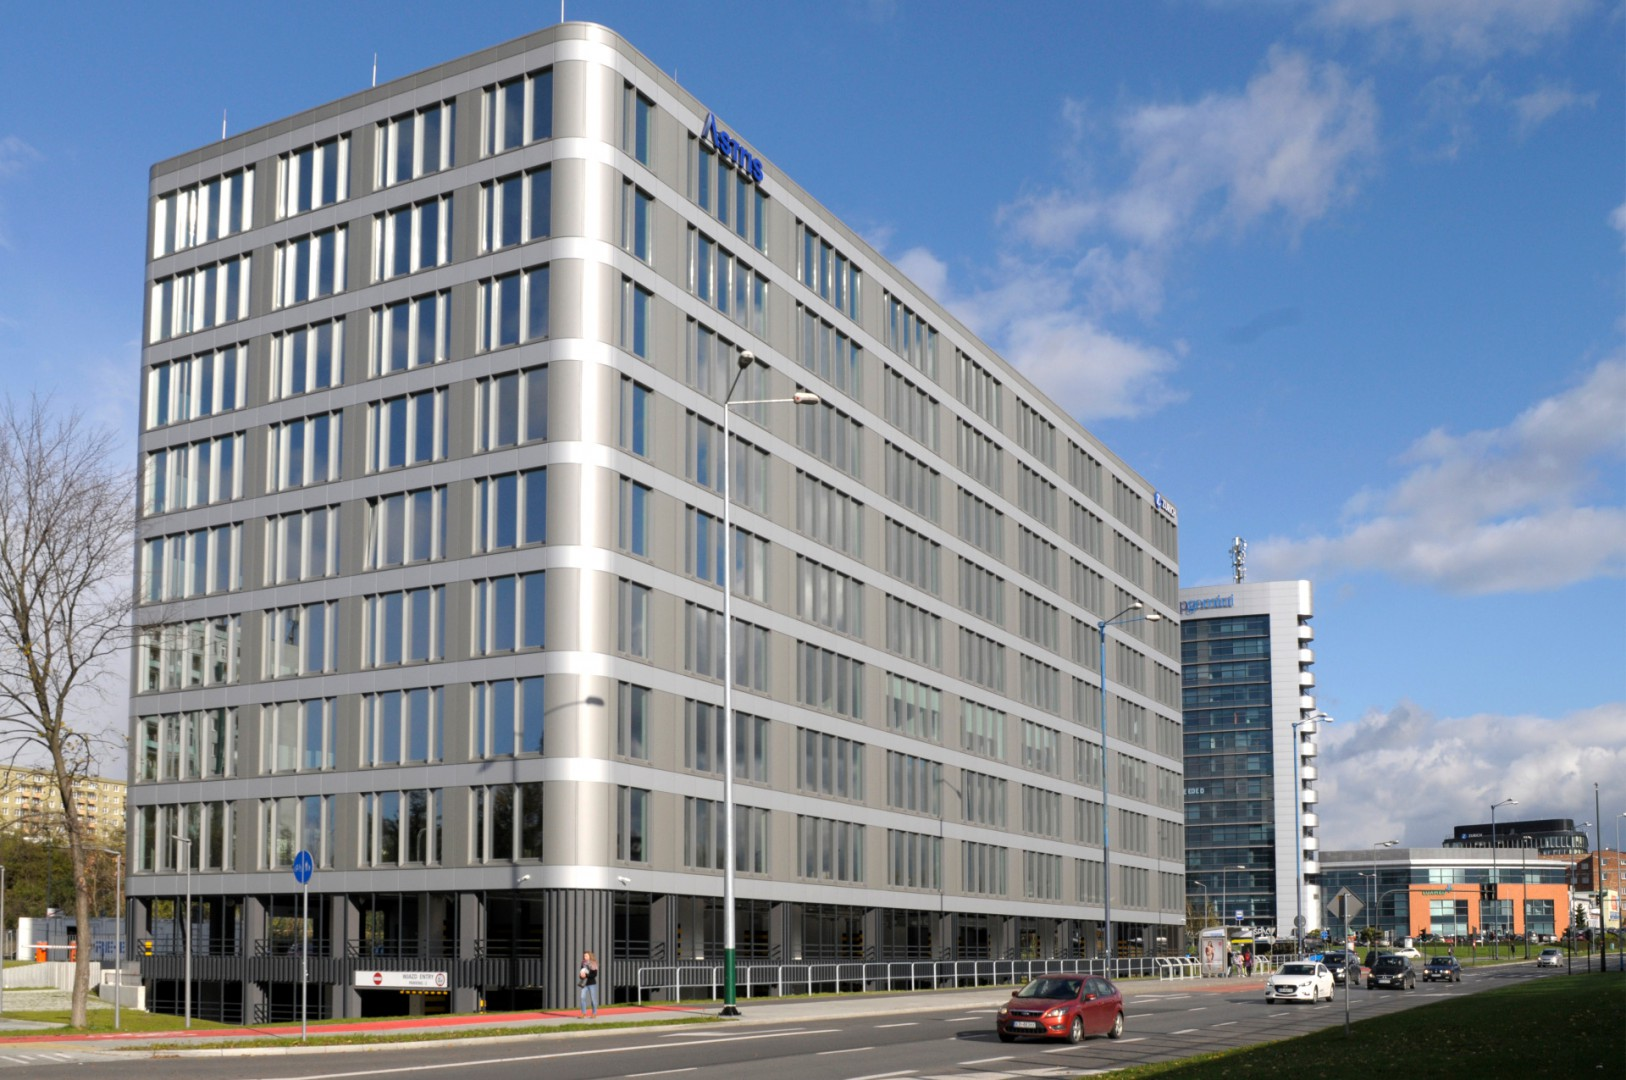 Commissioning of the Astris office building